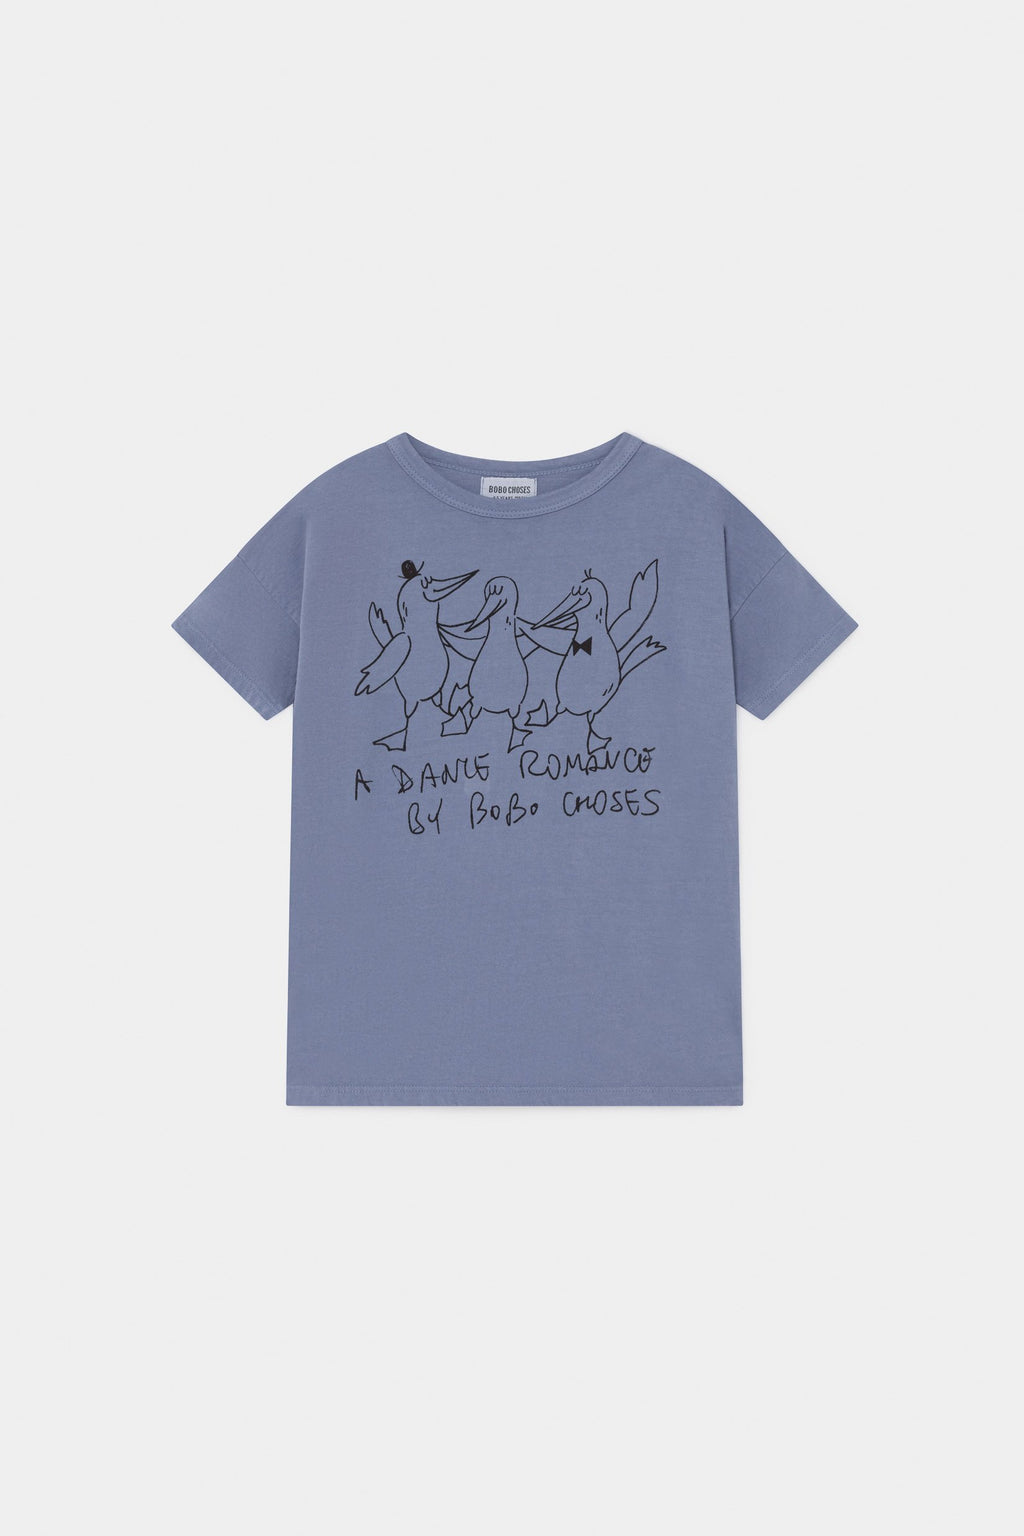 Dancing birds t-shirt Bobo Choses Top Bobo Choses